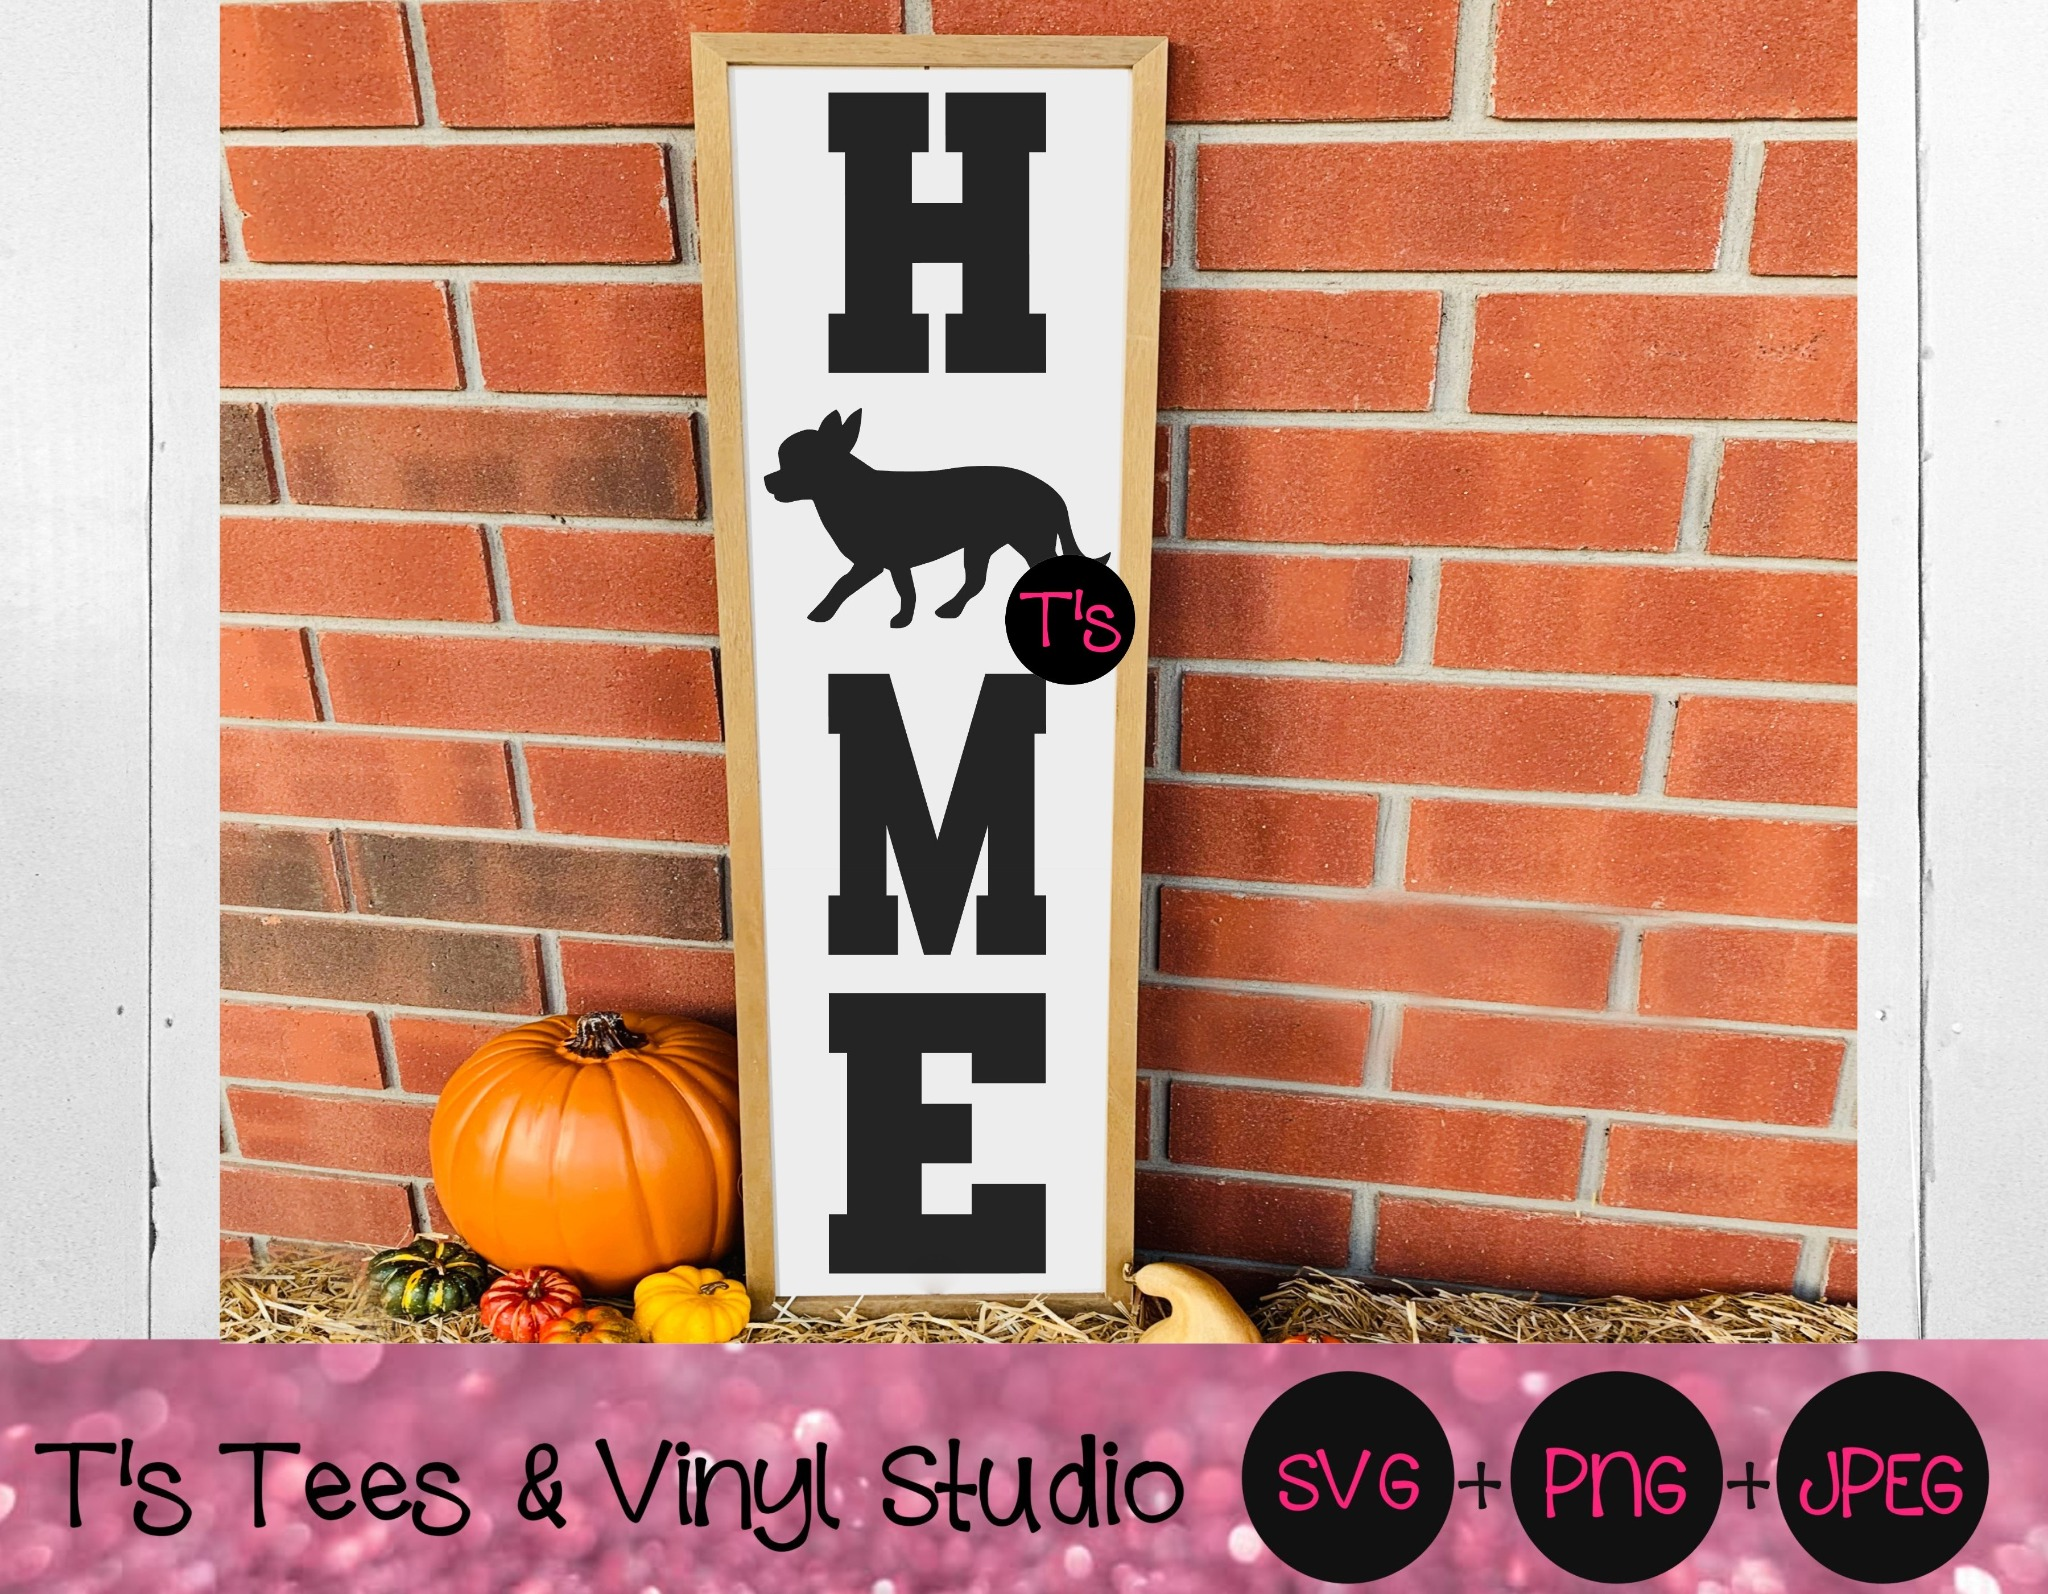 Chihuahua Svg, Home Svg, Welcome Svg, Porch Sign Svg, Chihuahua Sign Svg, Chihuahua Home Porch Sign